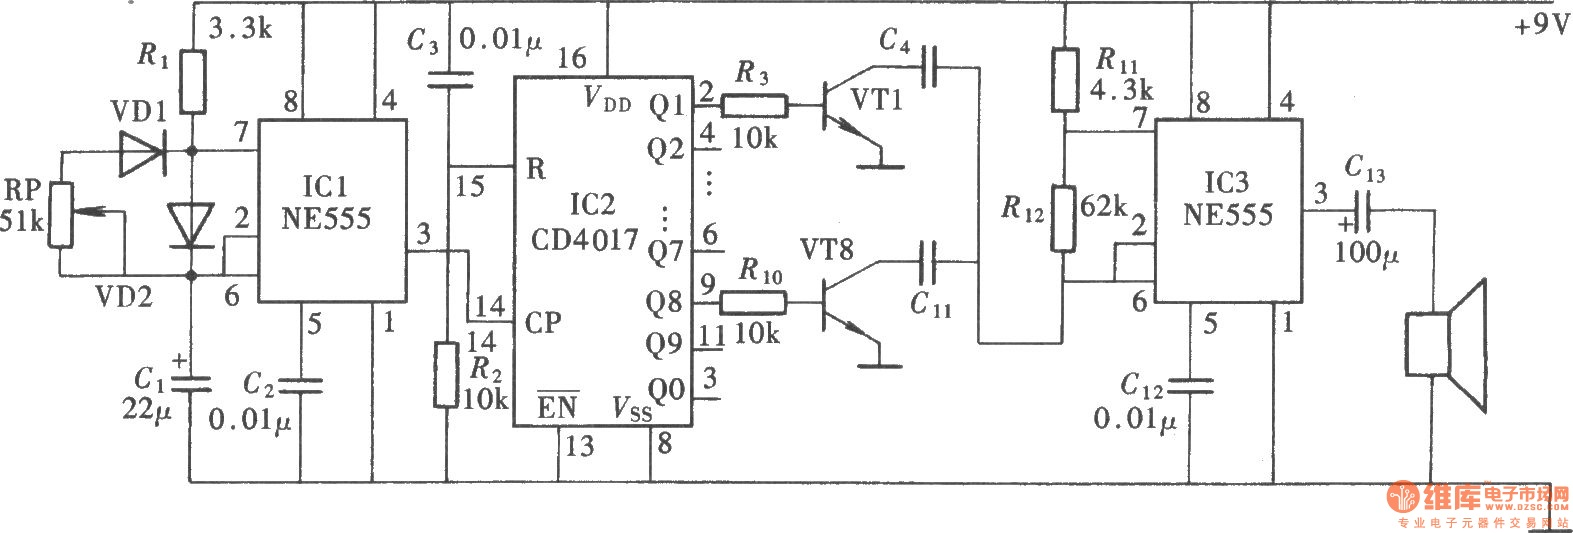 New Circuits Page 137 Two Tone Alarm Generator Using Lm3900 Special Sound Audio Oscillator Circuitne555 Cd4017